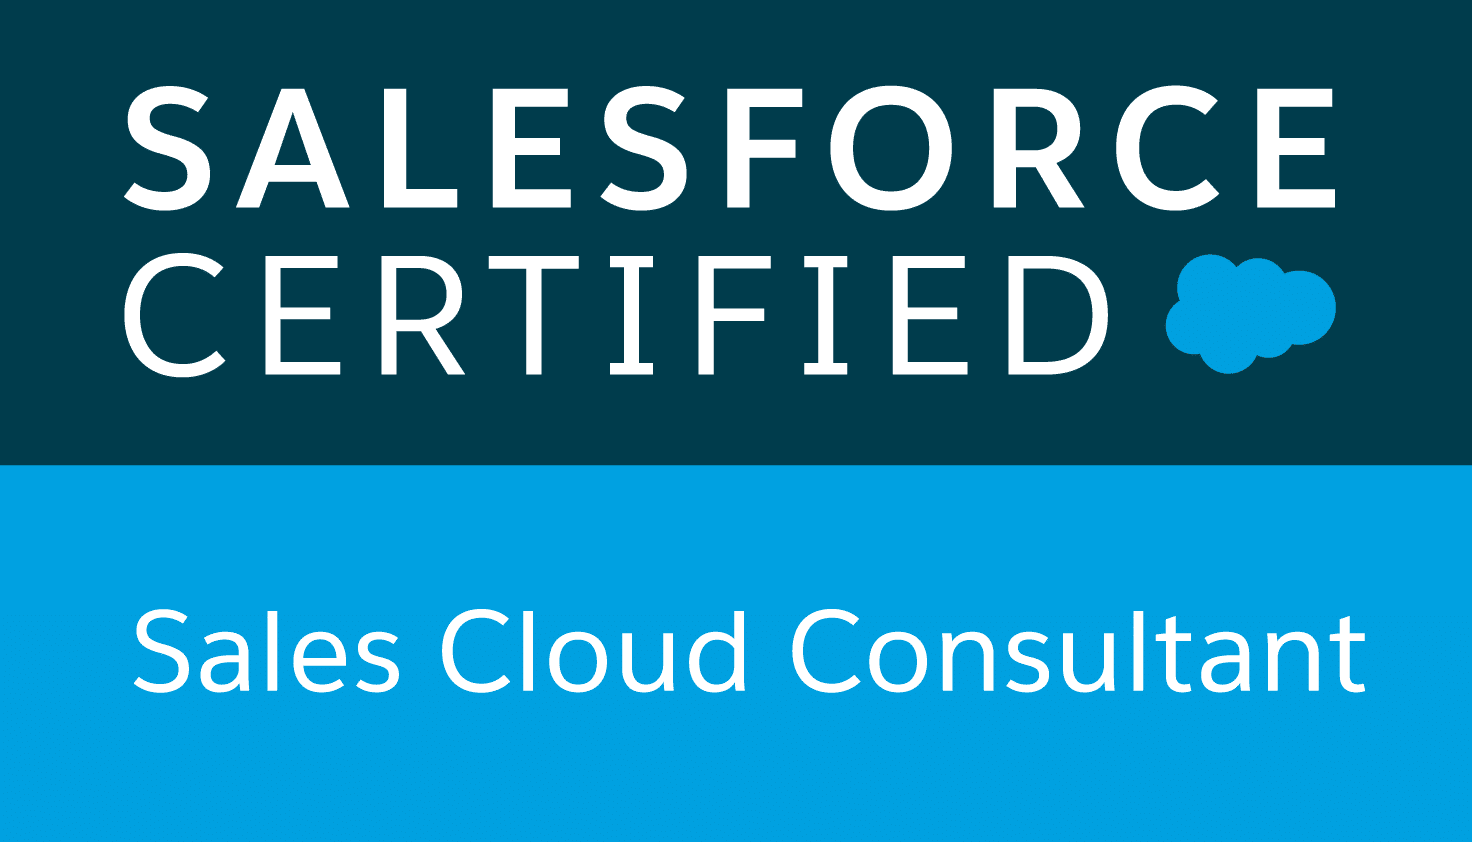 Salesforce - Sales Cloud Consultant